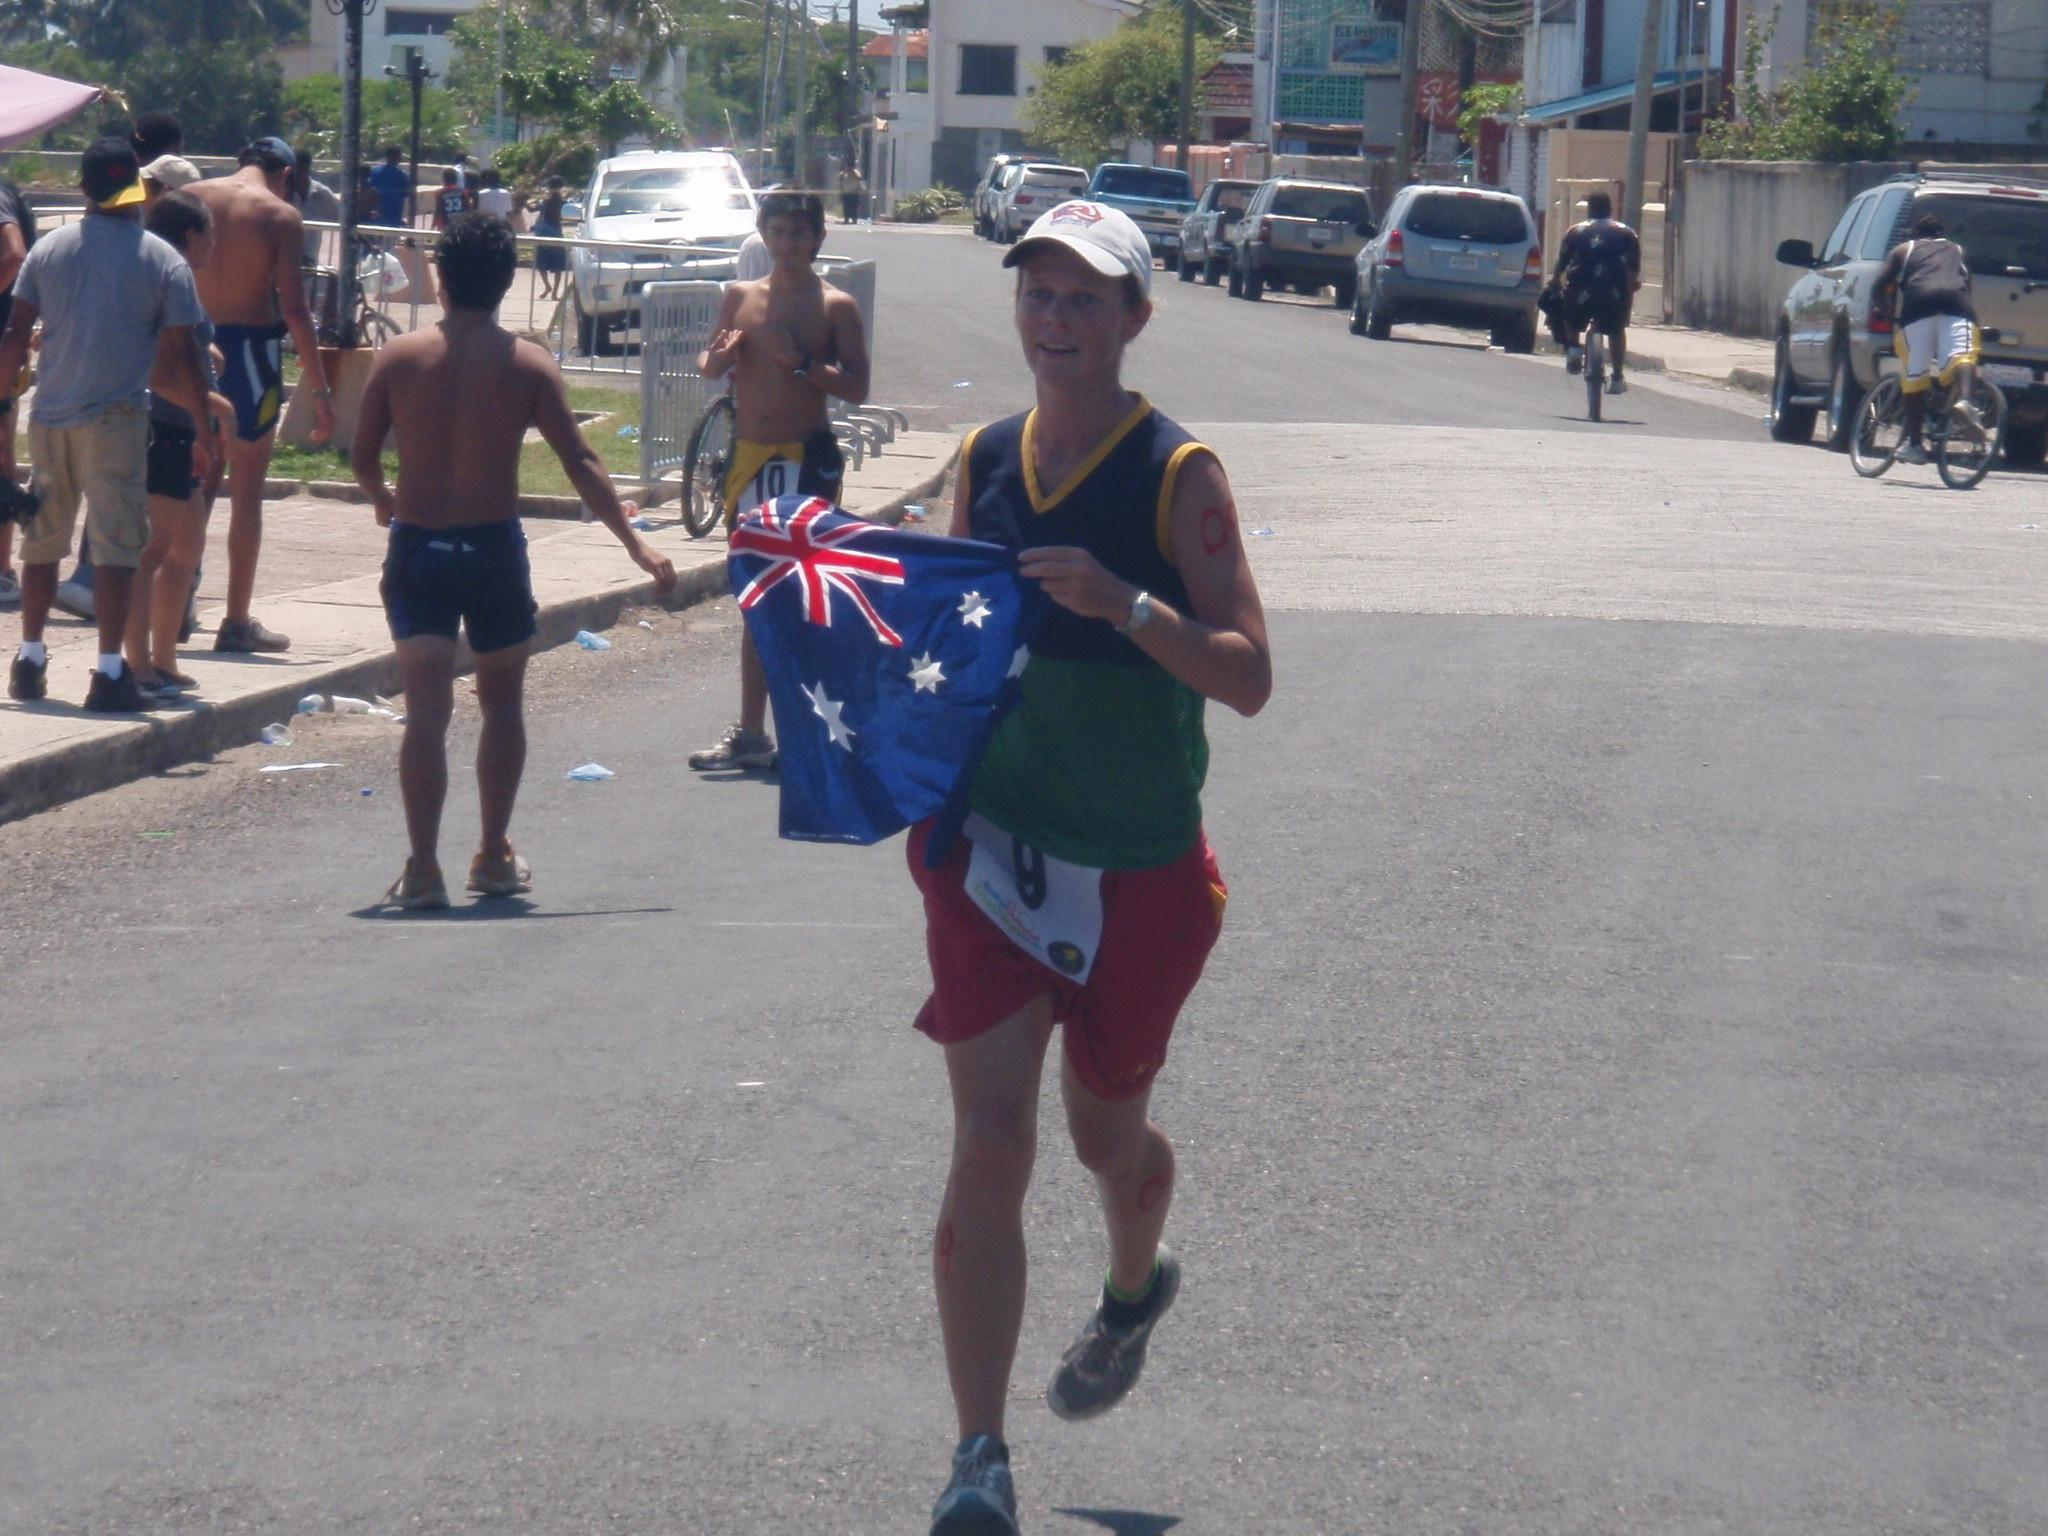 Competing in the Belize Triathlon: Not Such a Breeze